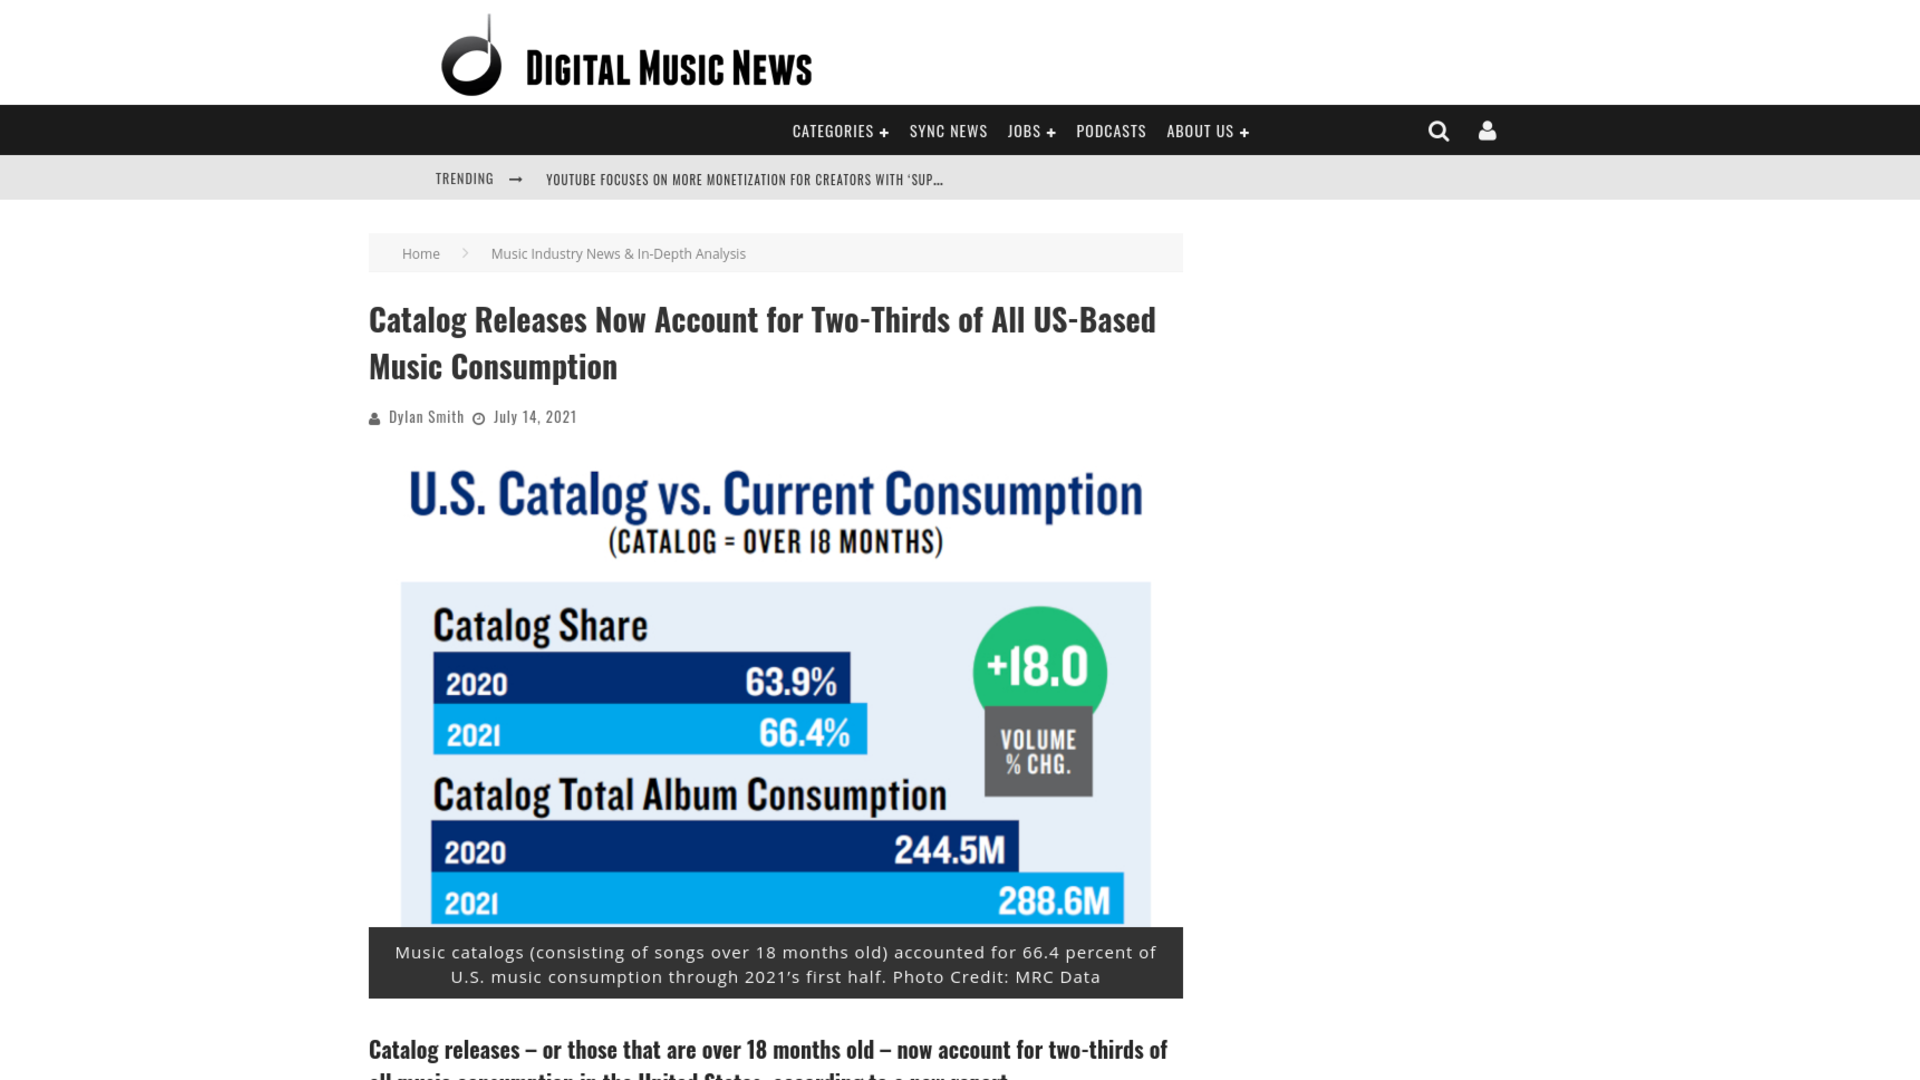 Fairness Rocks News Catalog Releases Now Account for Two-Thirds of All US-Based Music Consumption